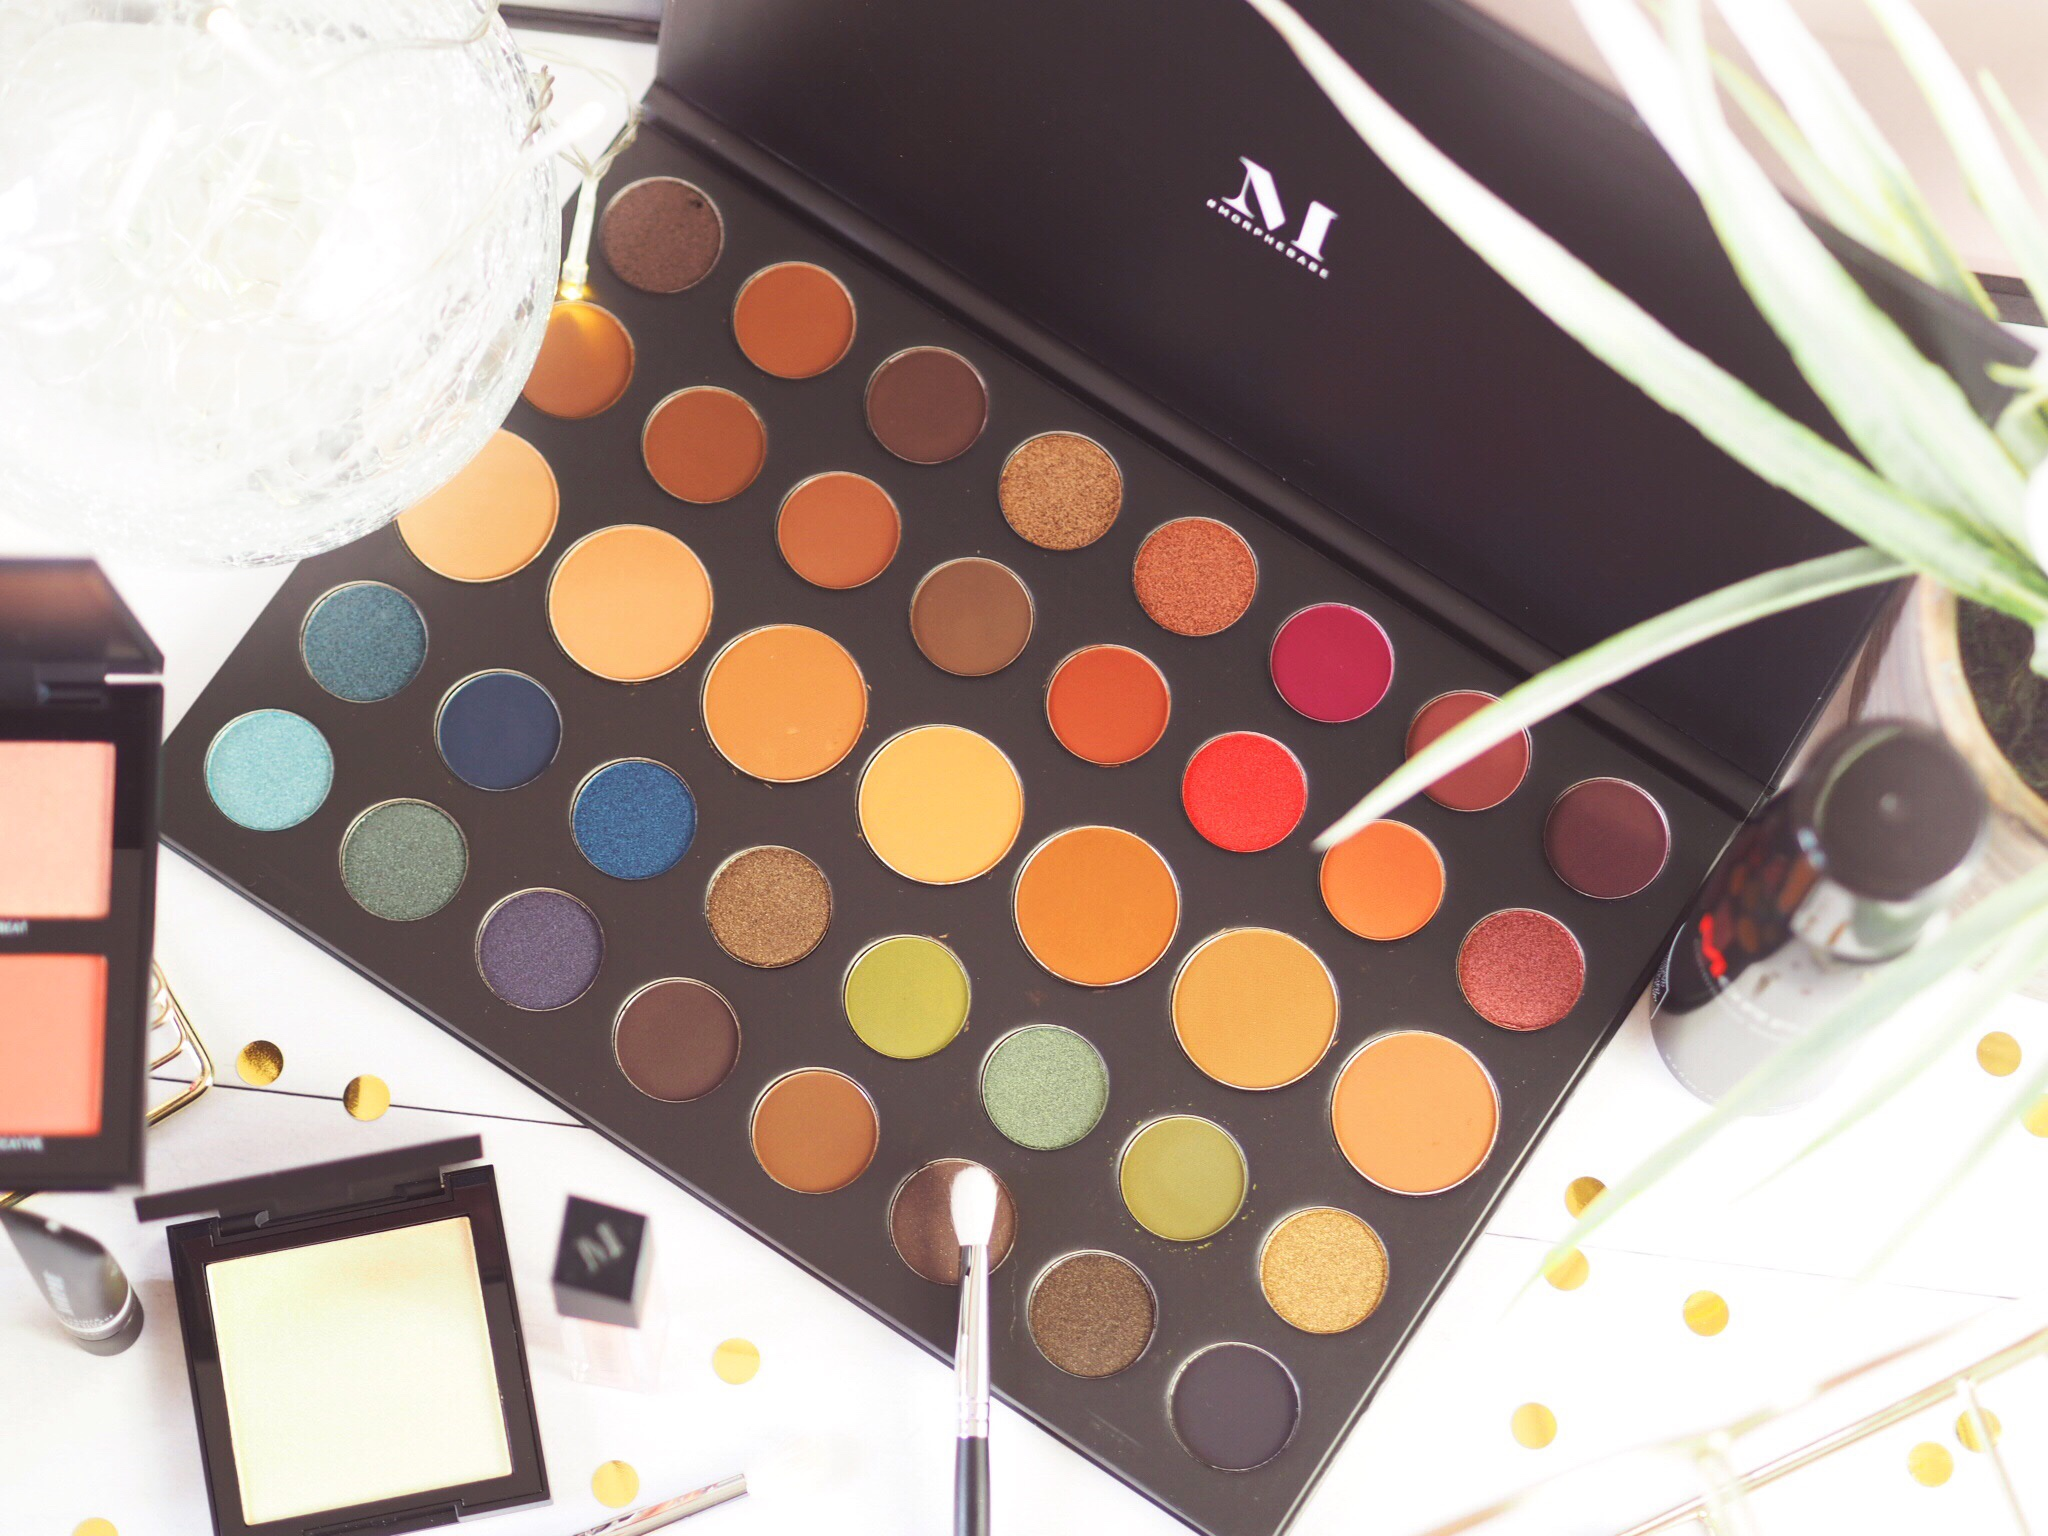 Morphe 39A Dare To Create Artistry Eyeshadow Palette